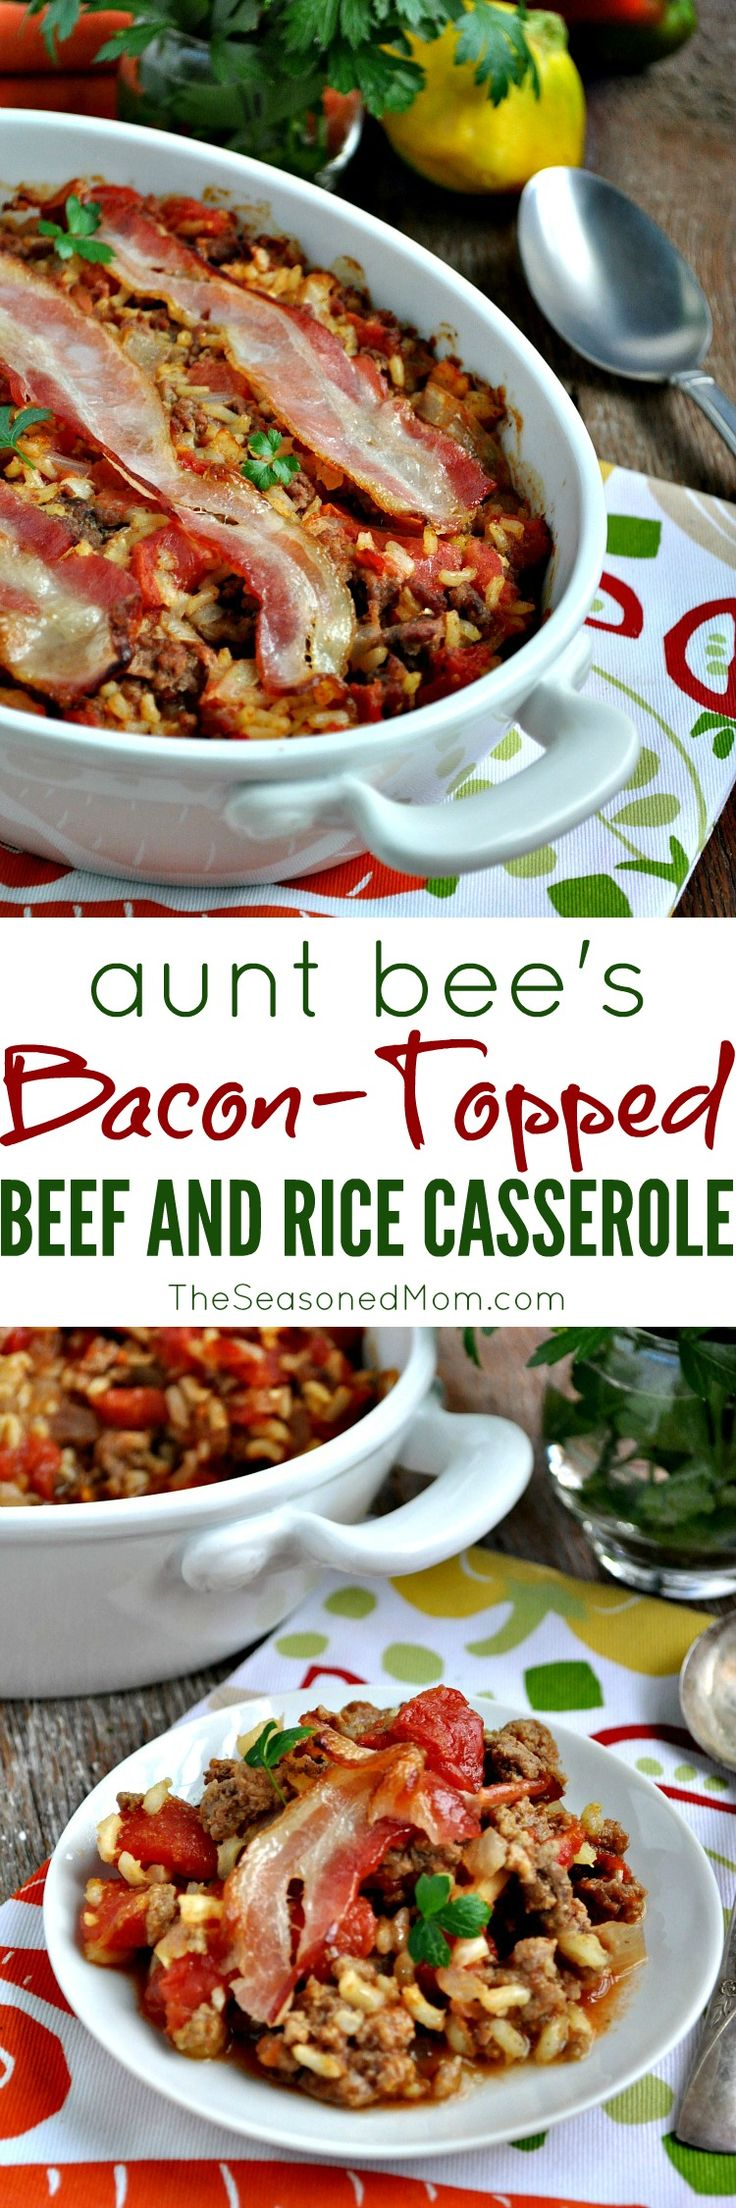 An easy comfort food dinner: Aunt Bee's Bacon-Topped Beef and Rice Casserole! Gluten-free and dairy-free, too!